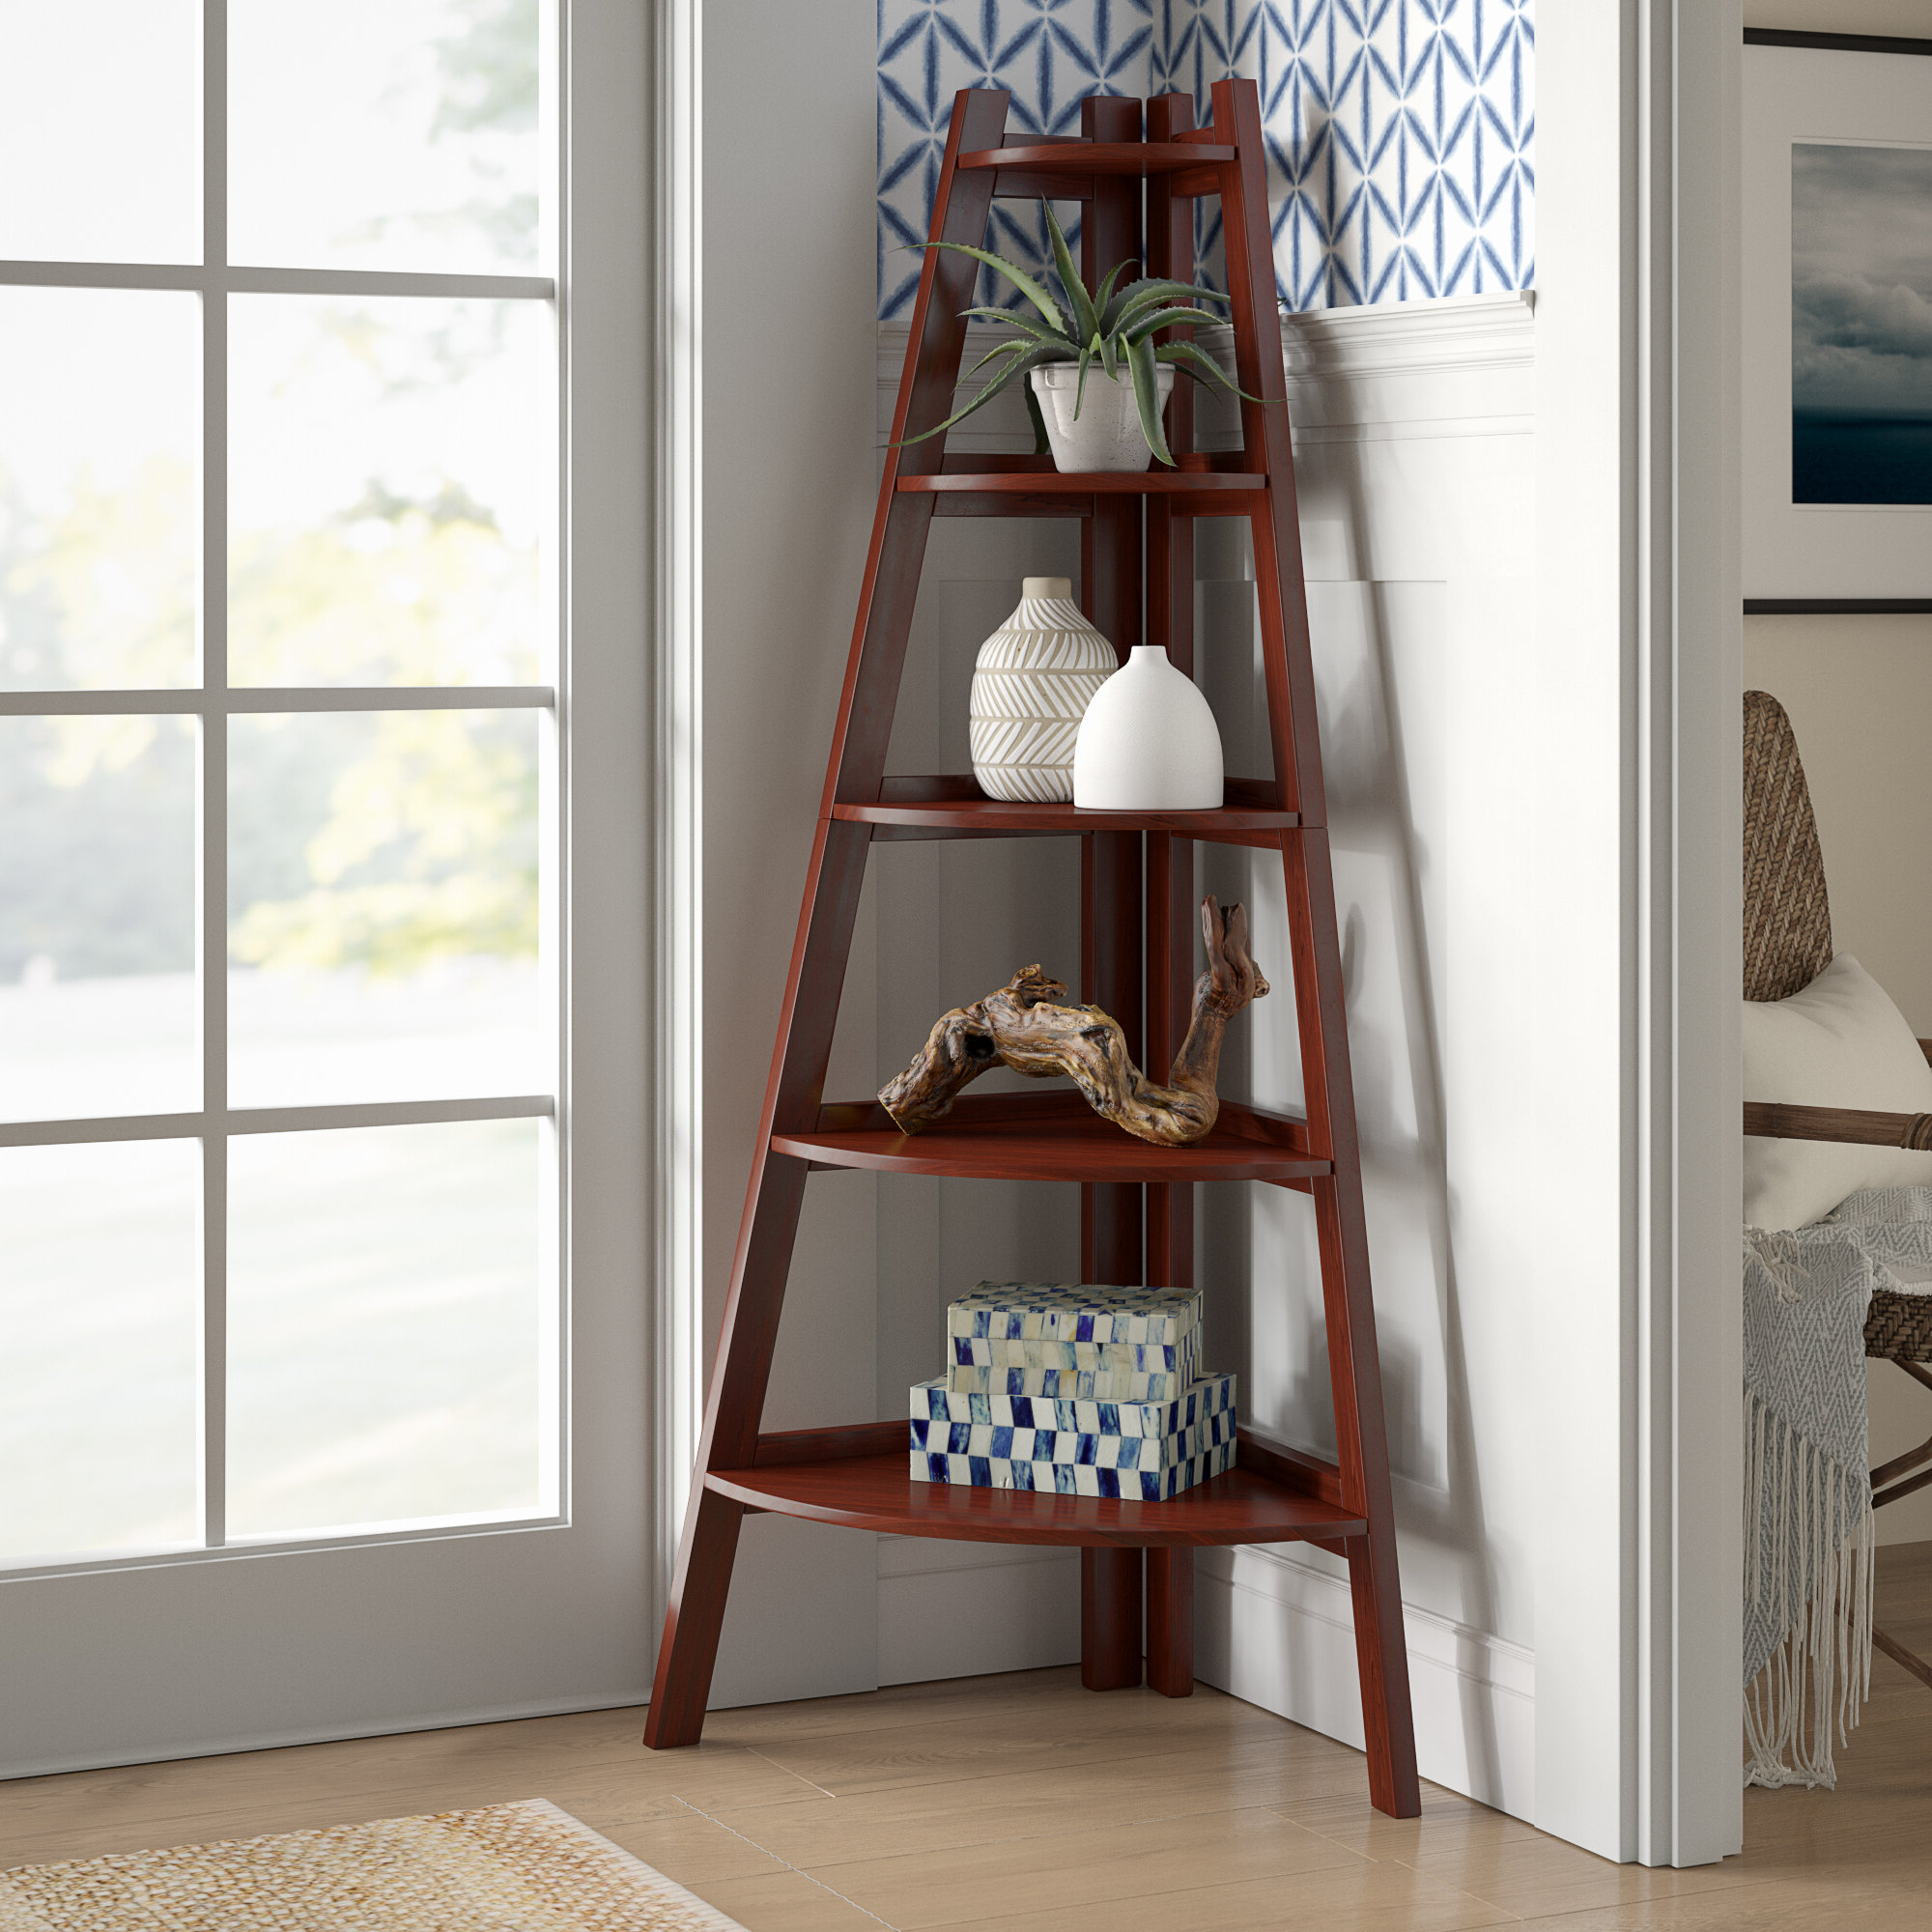 Most Recent Beachcrest Home Pierview Corner Bookcase & Reviews (View 13 of 20)